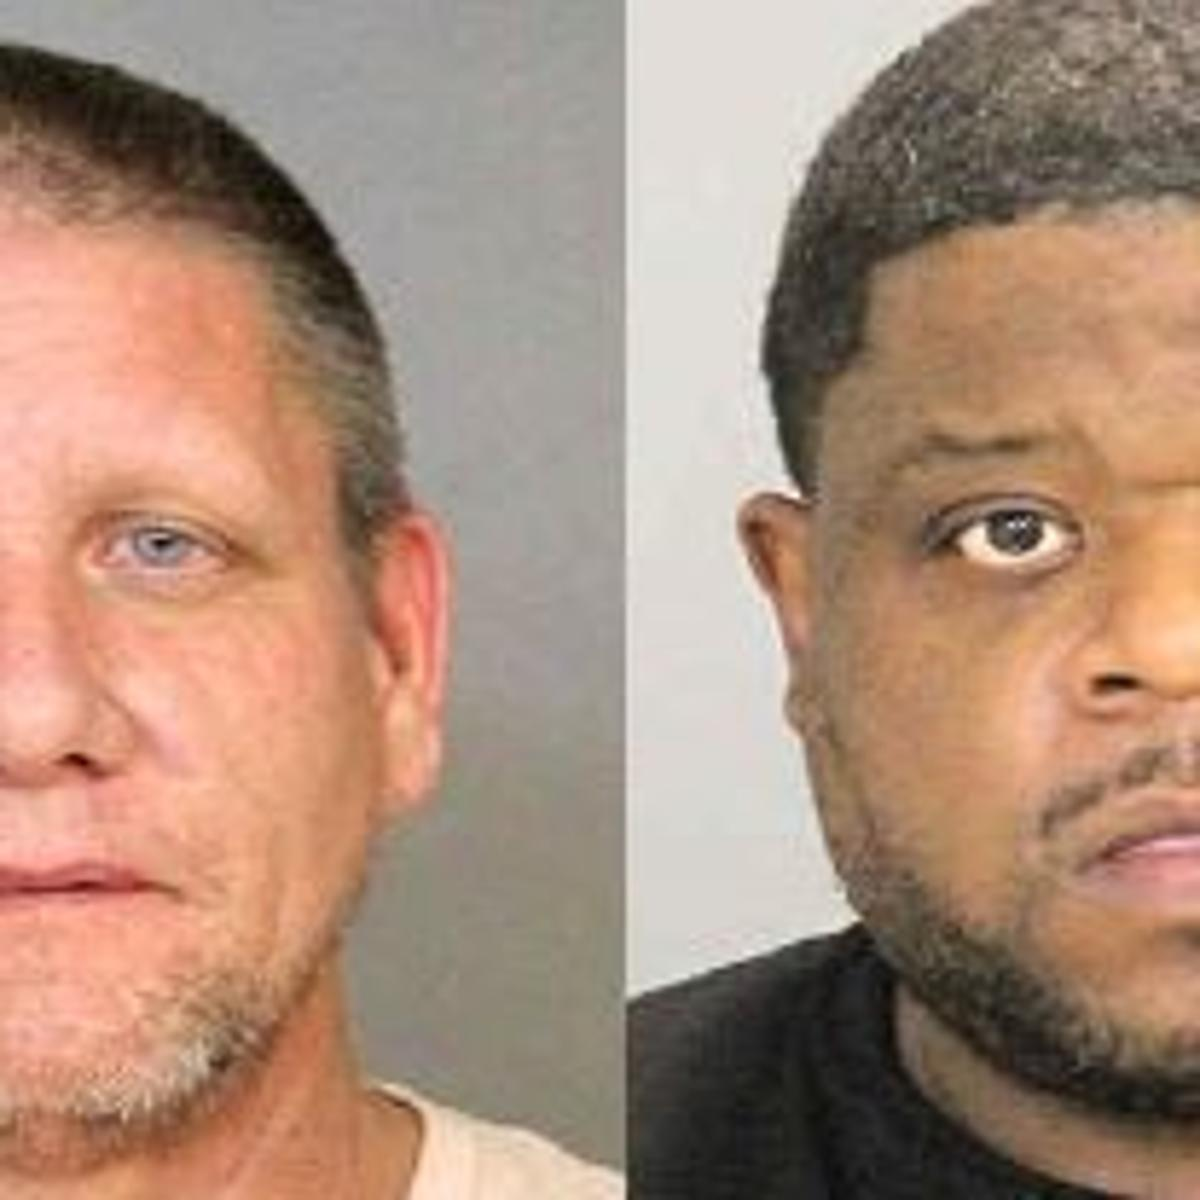 20 pounds of meth found in Waterloo raid, 2 men charged | Crime and